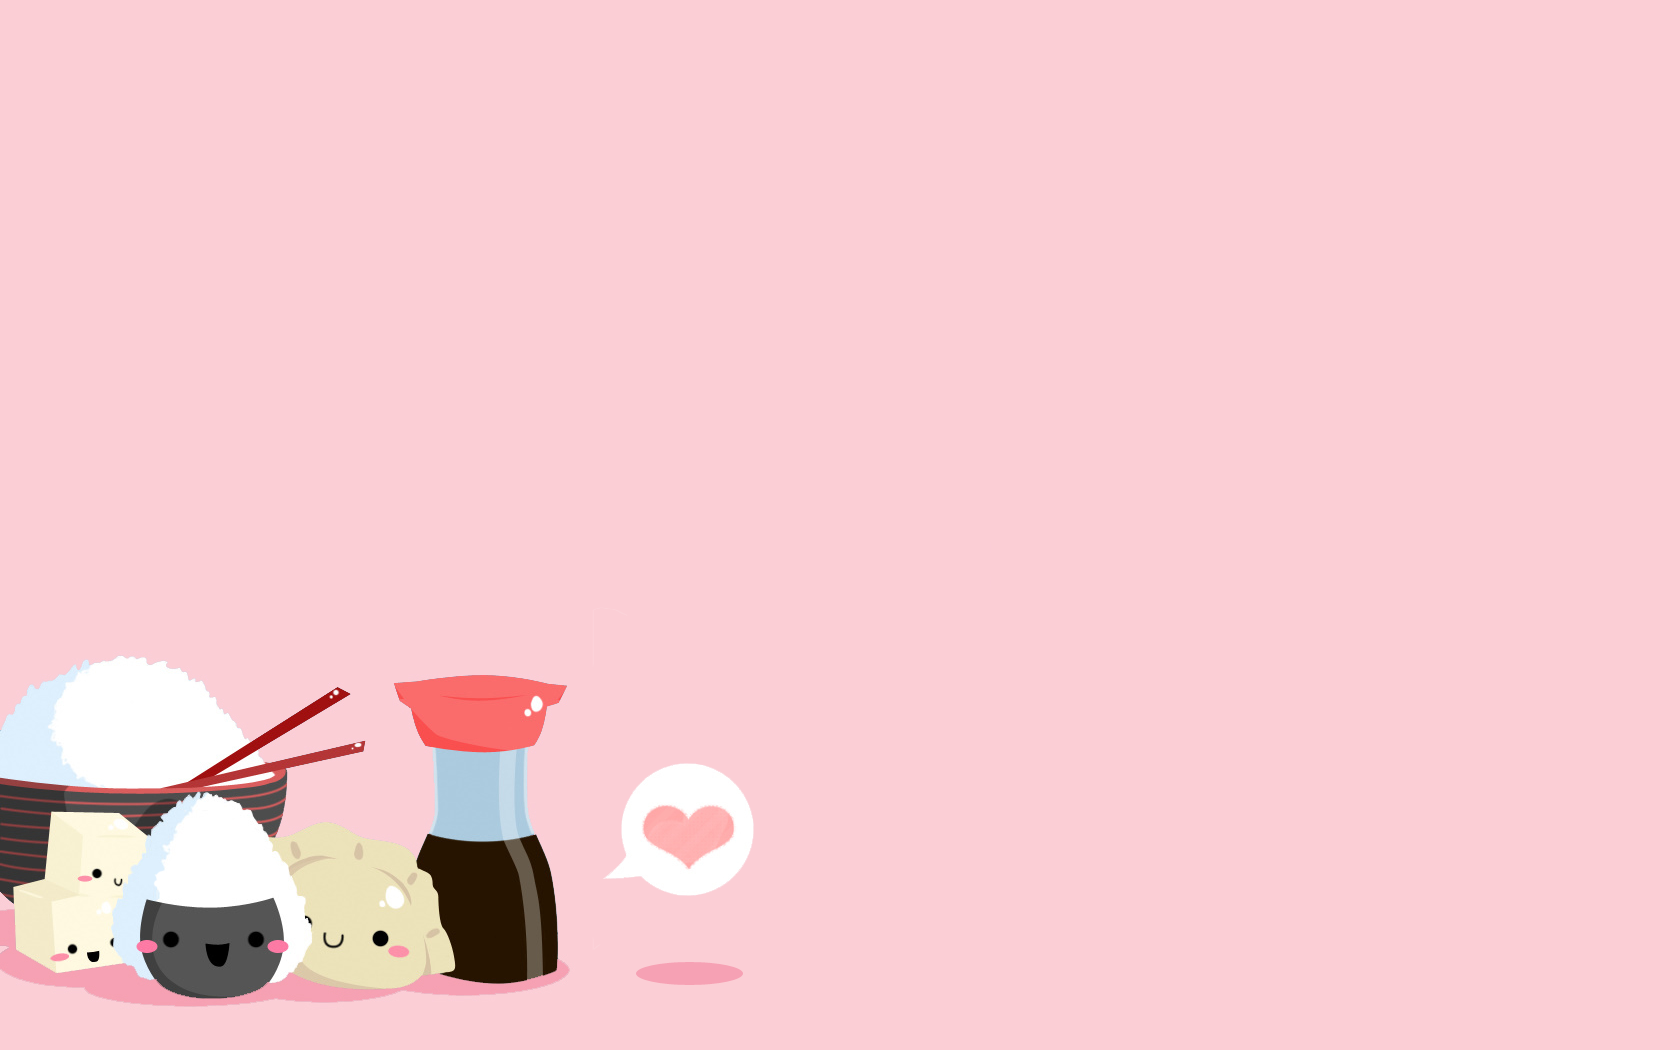 Kawaii Desktop Backgrounds Cute Desktop Wallpaper Cute Laptop Wallpaper Cute Anime Wallpaper